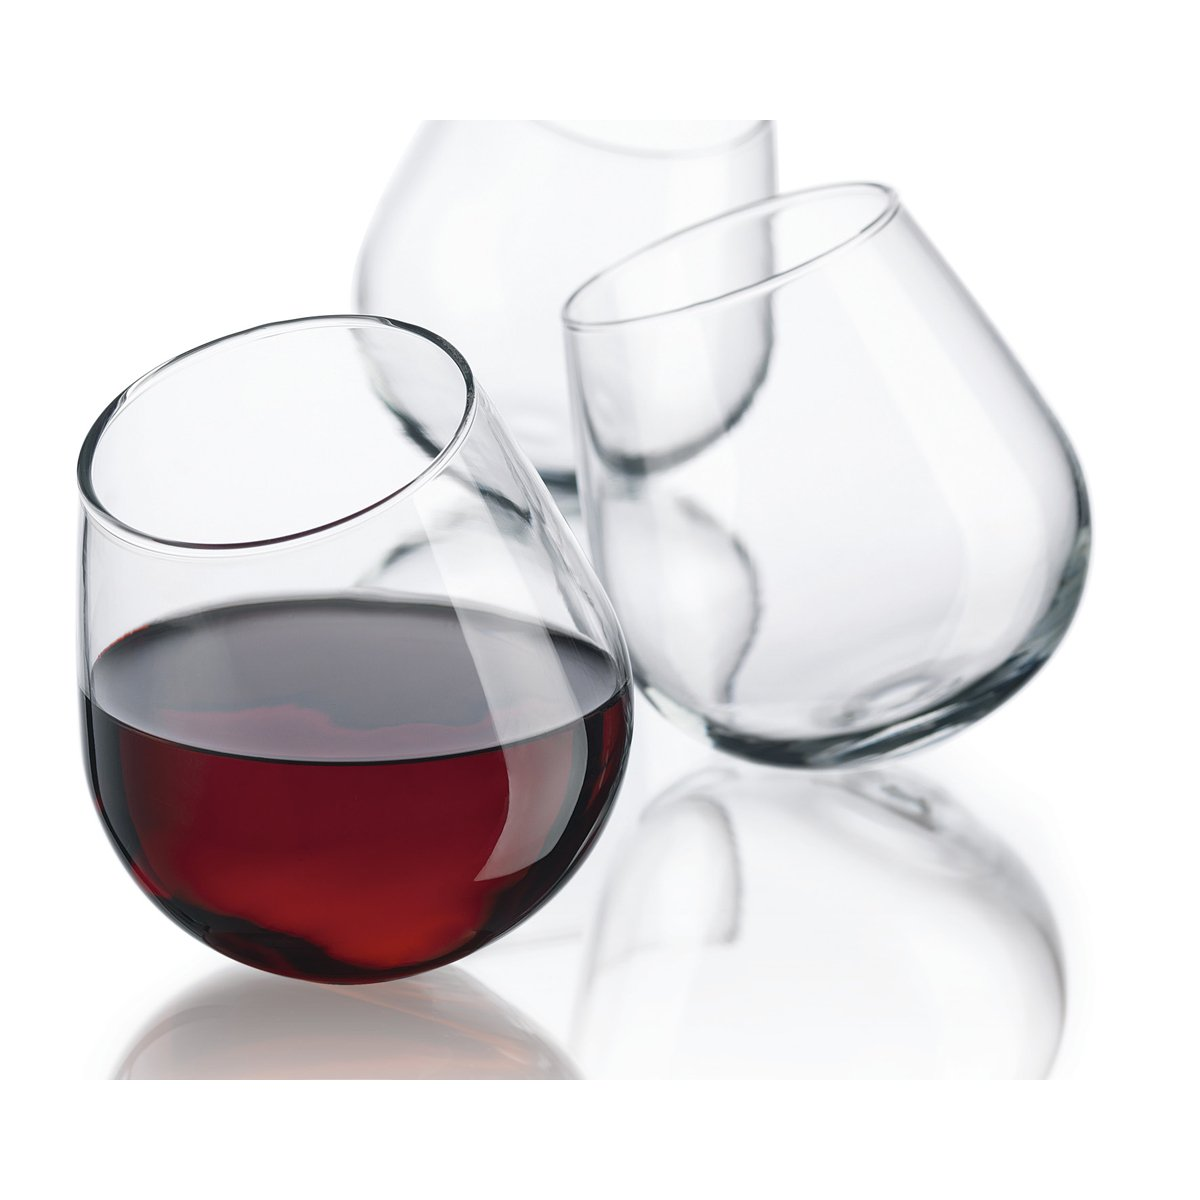 Amazon.com: Home Essentials S/4 Roly Poly Wine Glass: Home & Kitchen